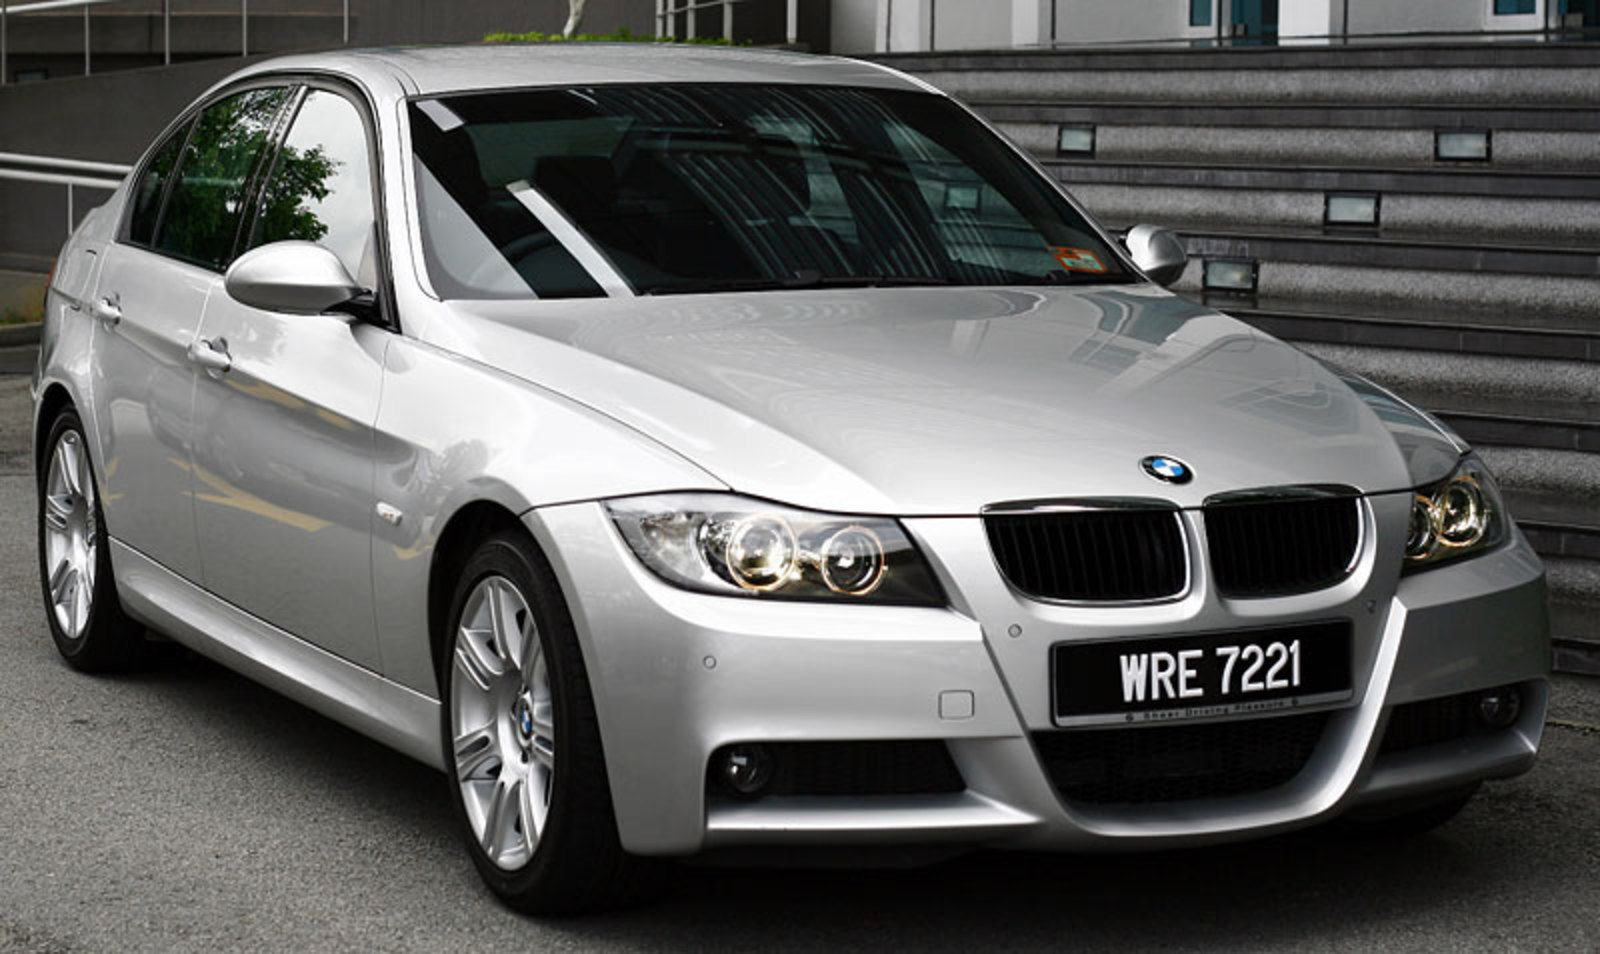 Test-drive or own the BMW 320i, and you will see why.